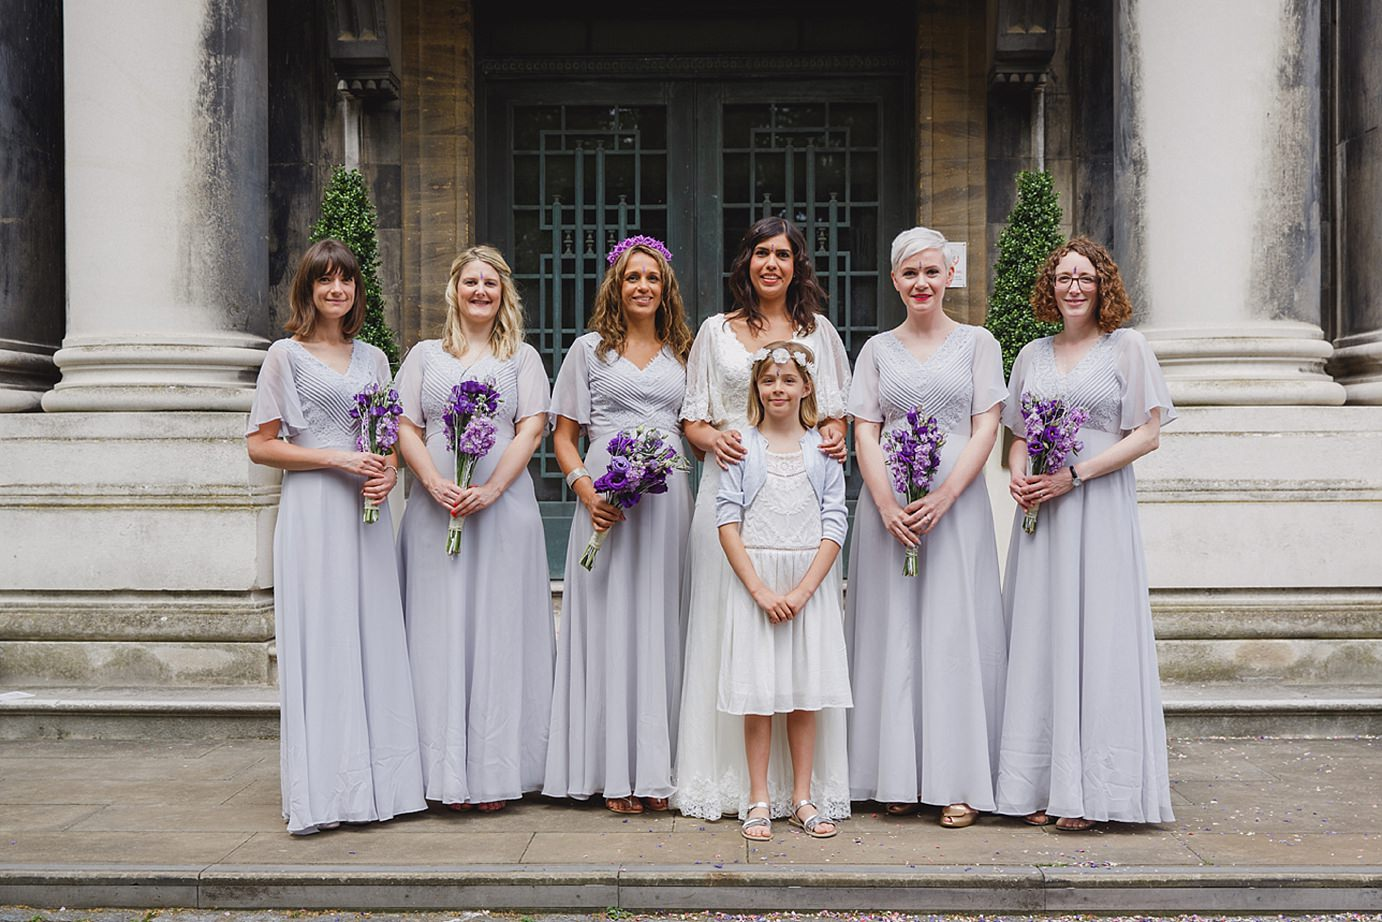 Londesborough pub wedding photography bride and bridesmaids